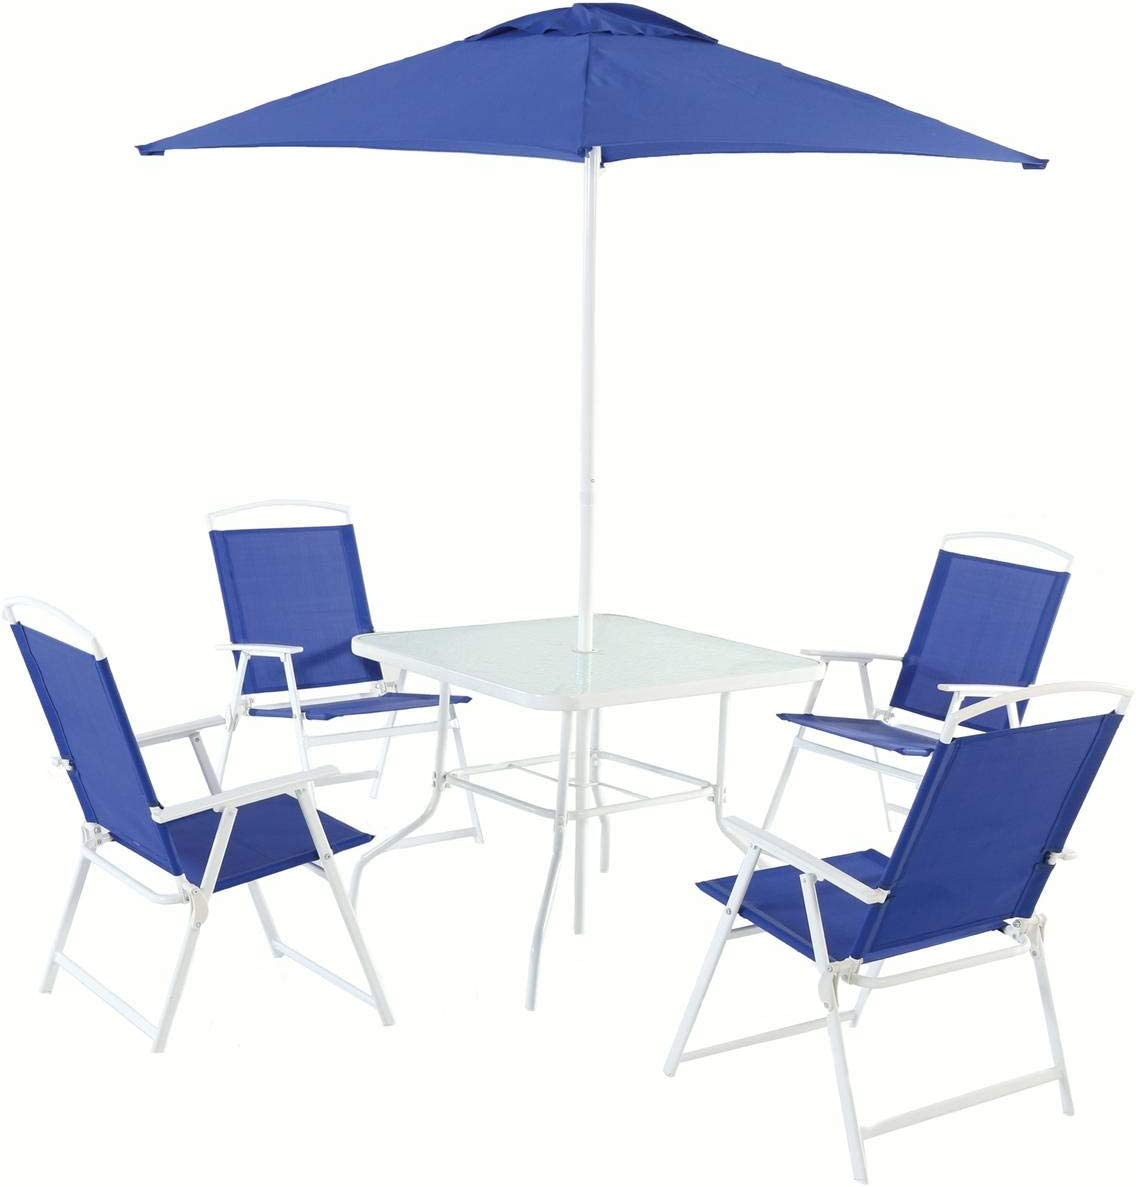 Mainstays Albany Lane 6-Piece Folding Seating Set (Blue): Garden & Outdoor